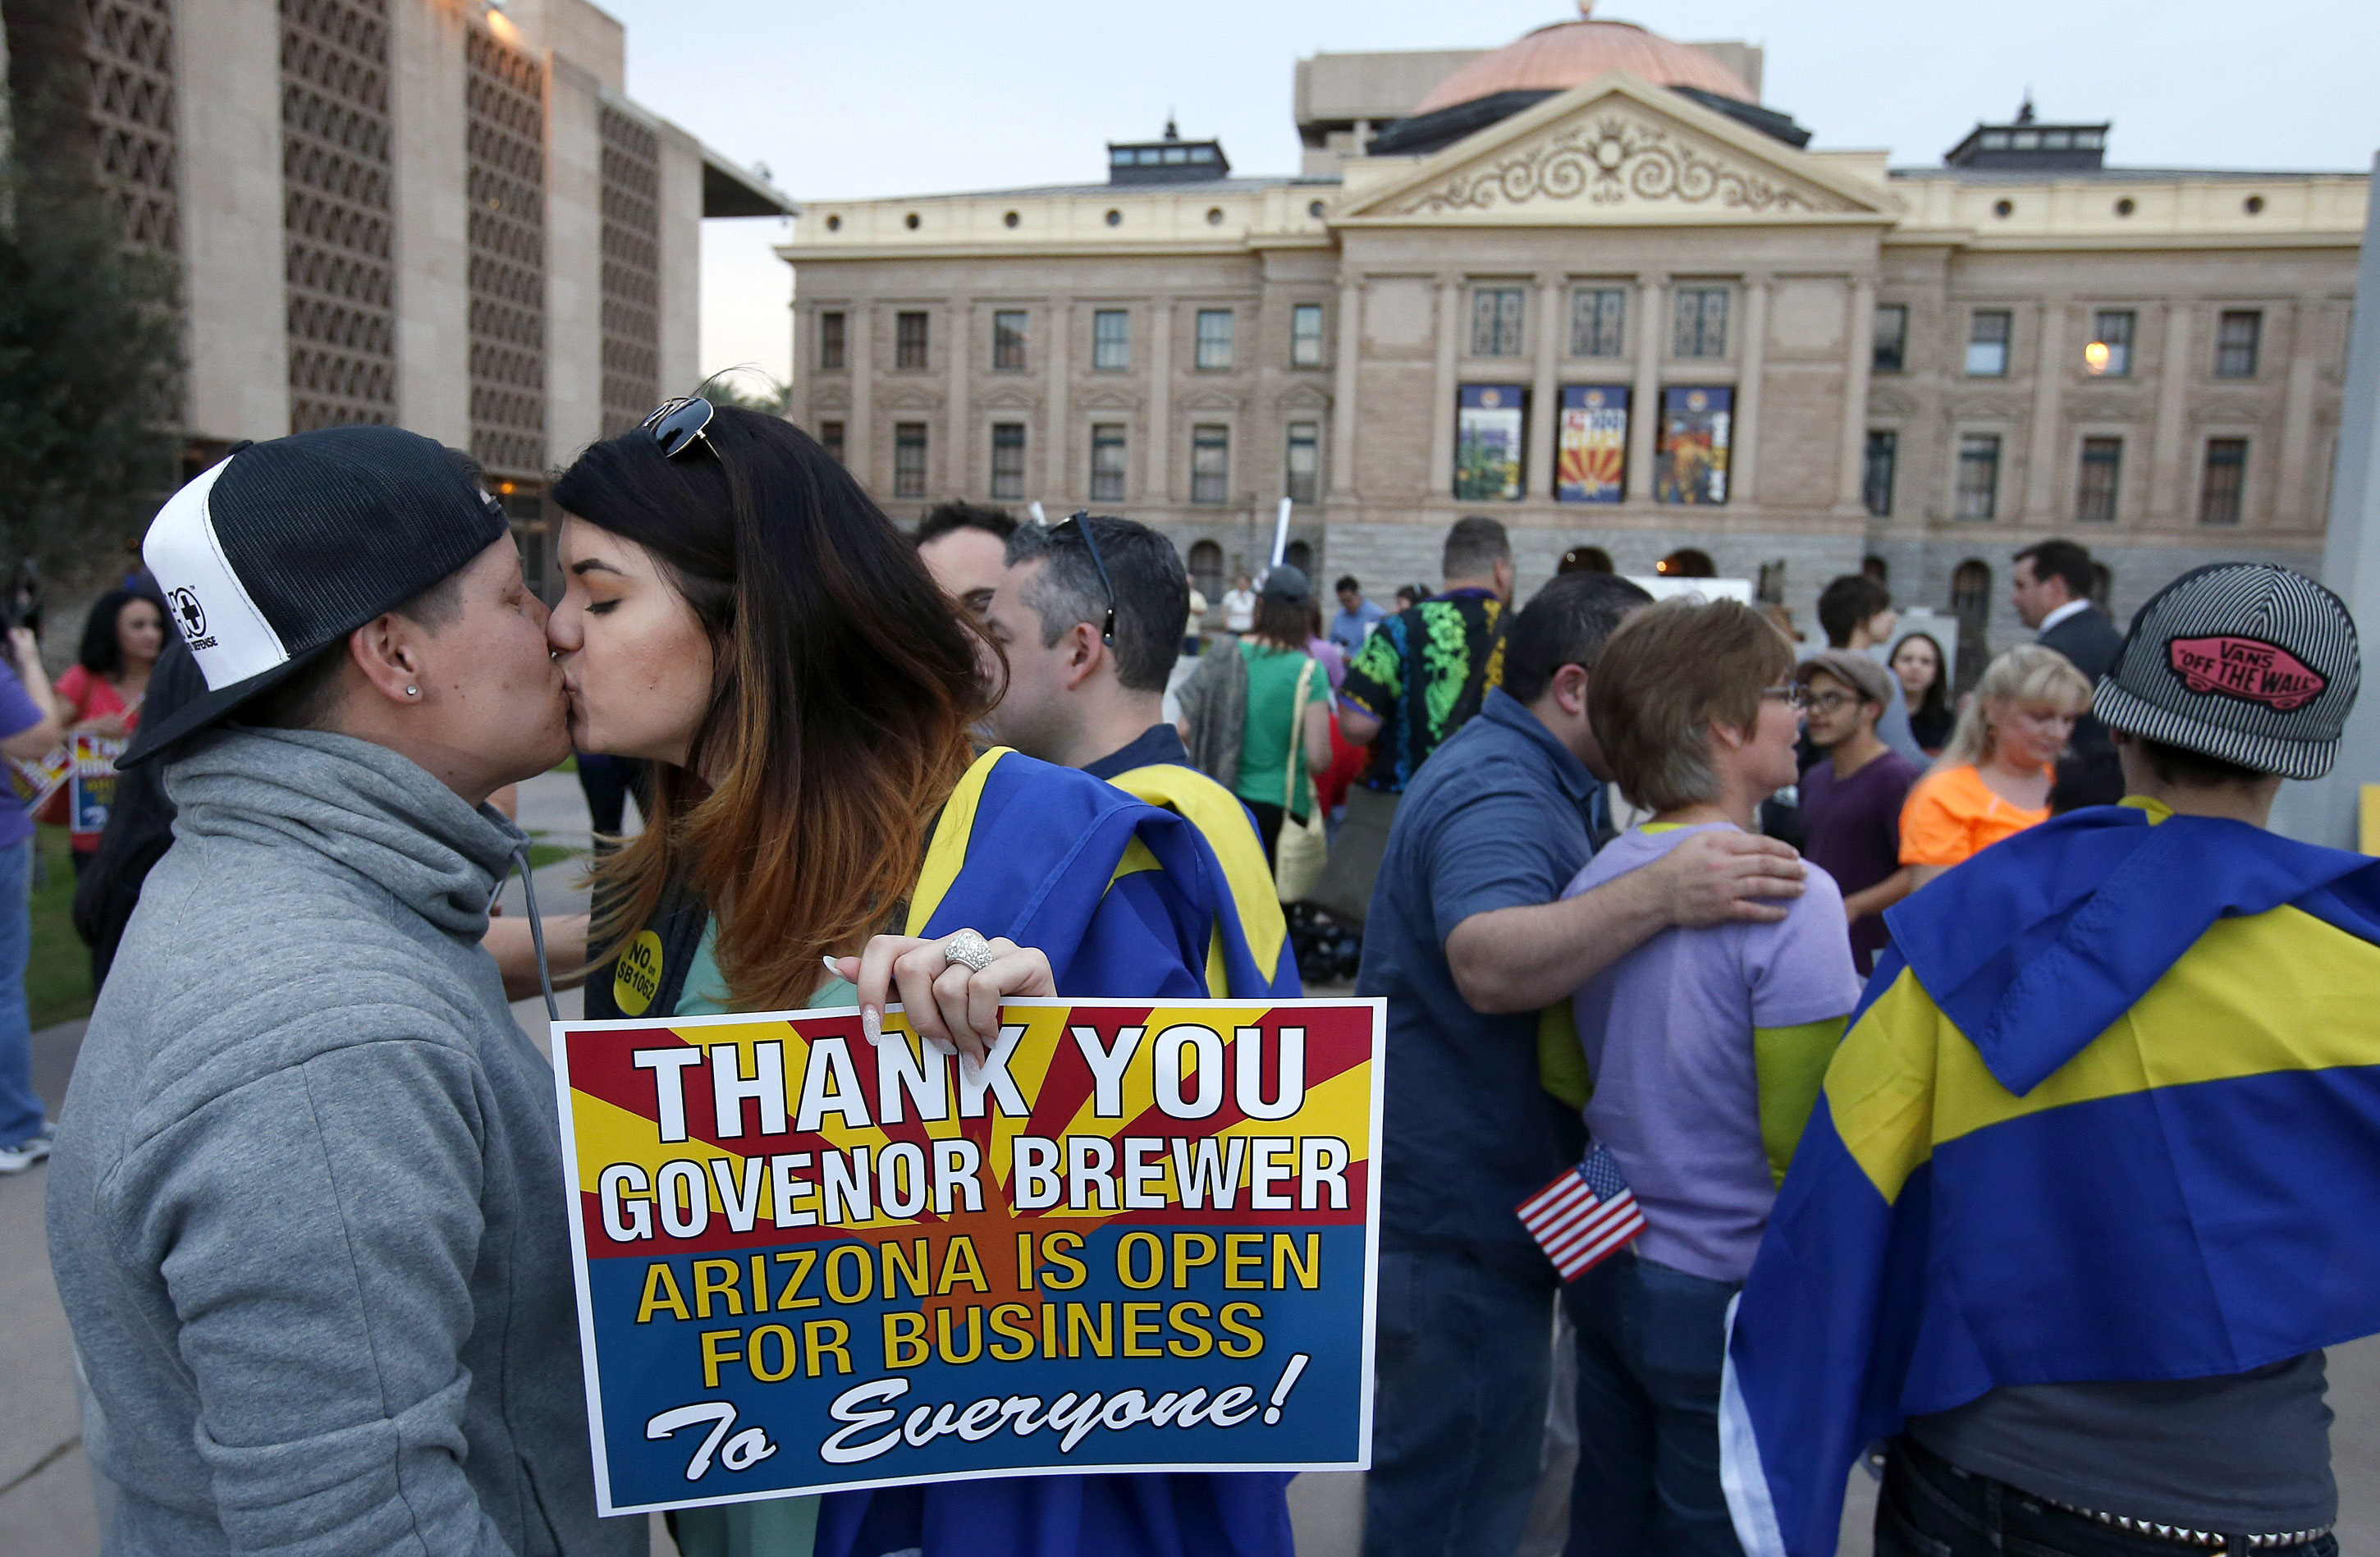 A-couple-kisses-after-learning-that-Arizona-Gov.-Jan-Brewer-announces-vetoed-SB1062-which-wouldve-granted-businesses-the-right-to-refuse-service-to-LGBTQ-people.-AP-PhotoRoss-D.-Franklin